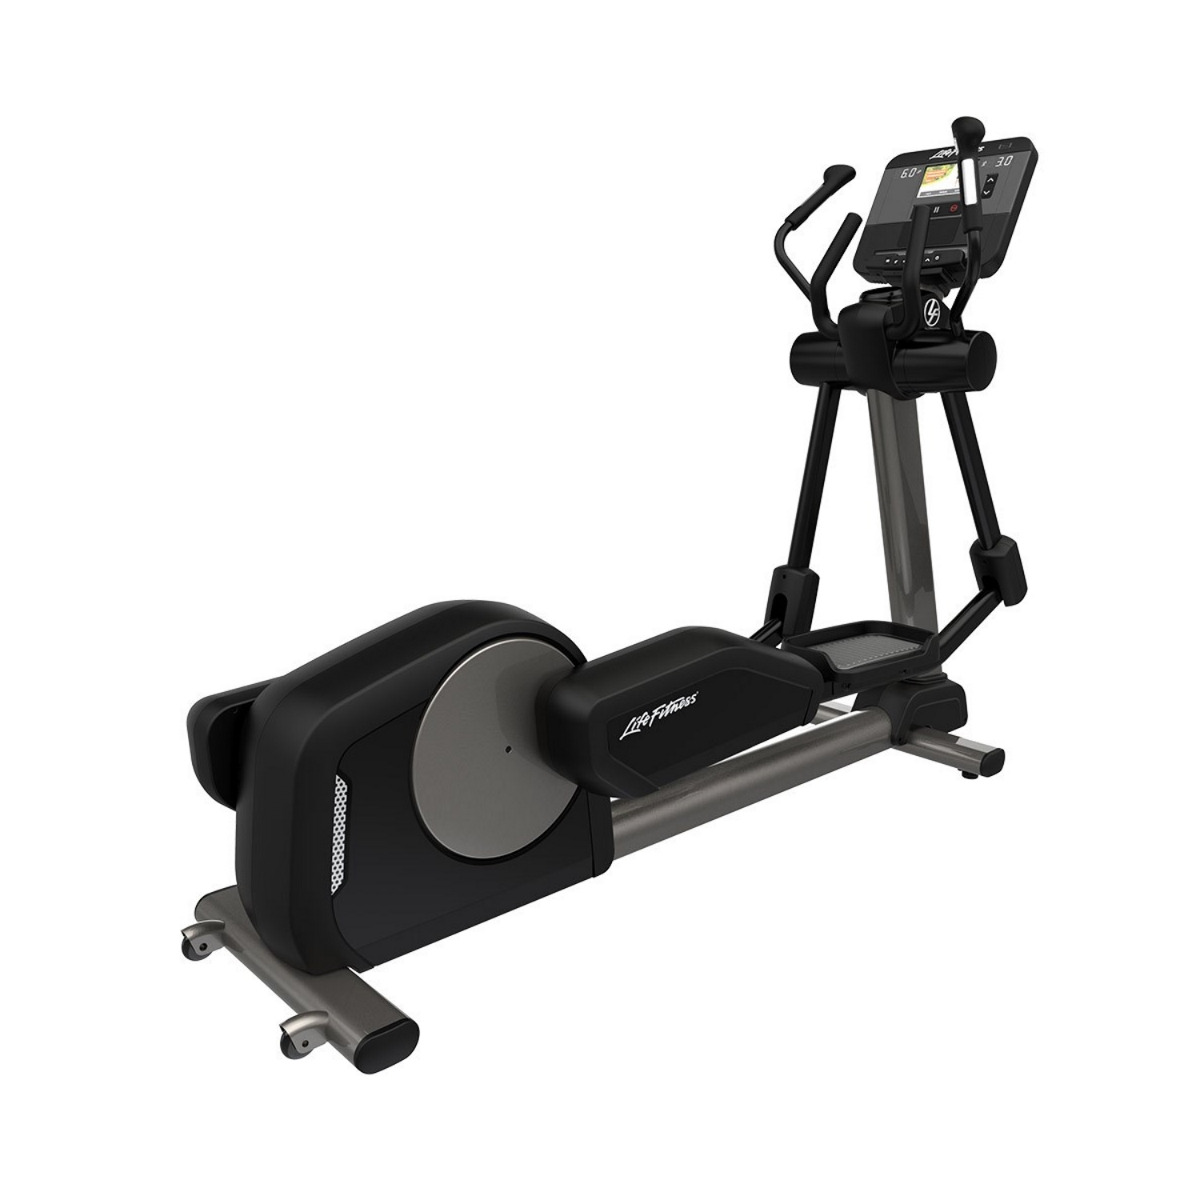 Life Fitness Club Series+ Elliptical Cross Trainer